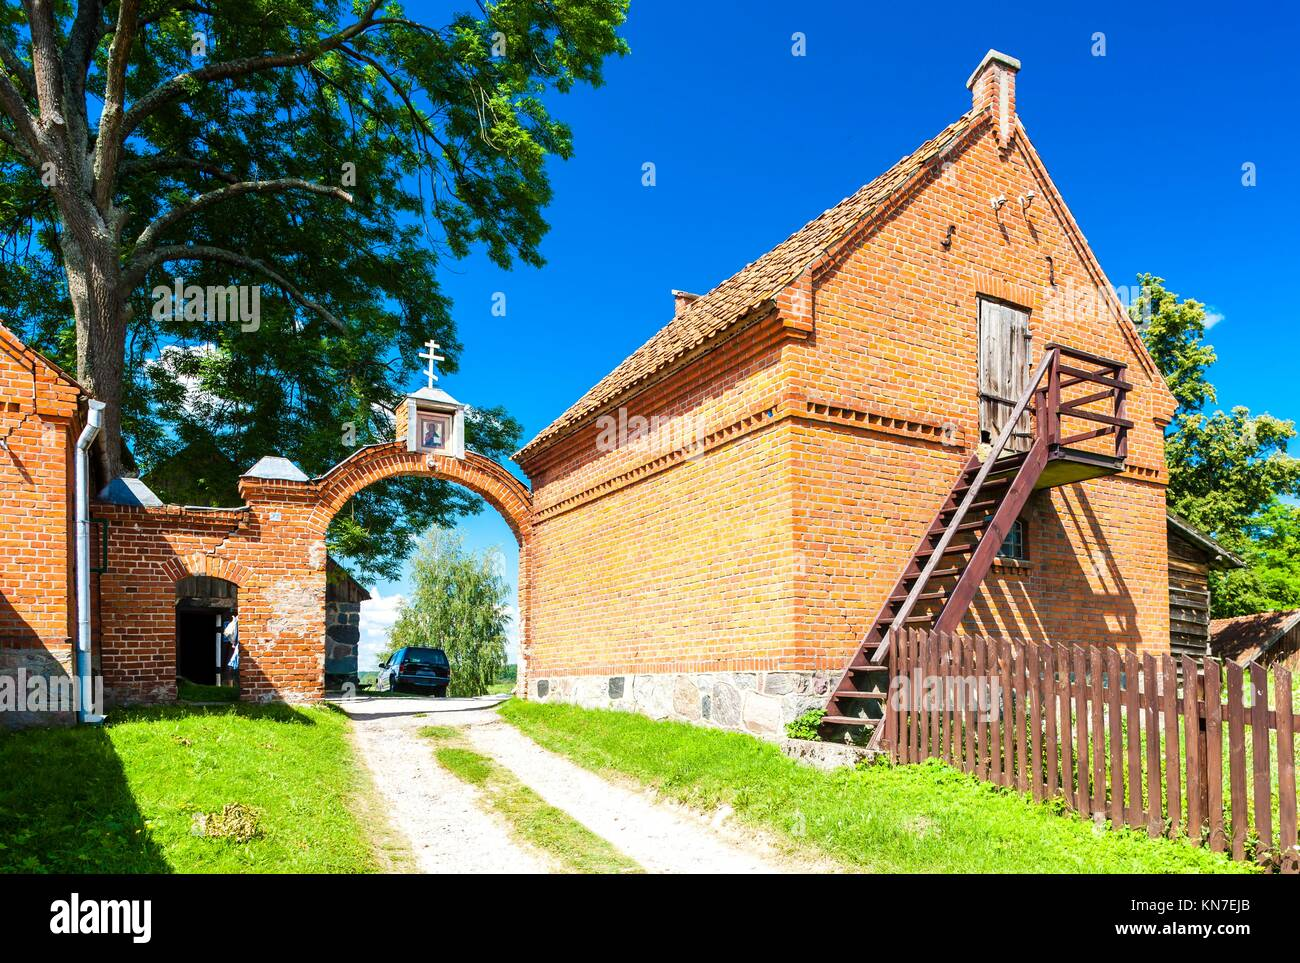 gate of Monastery of the Old Believers, Wojnowo, Warmian-Masurian Voivodeship, Poland. - Stock Image